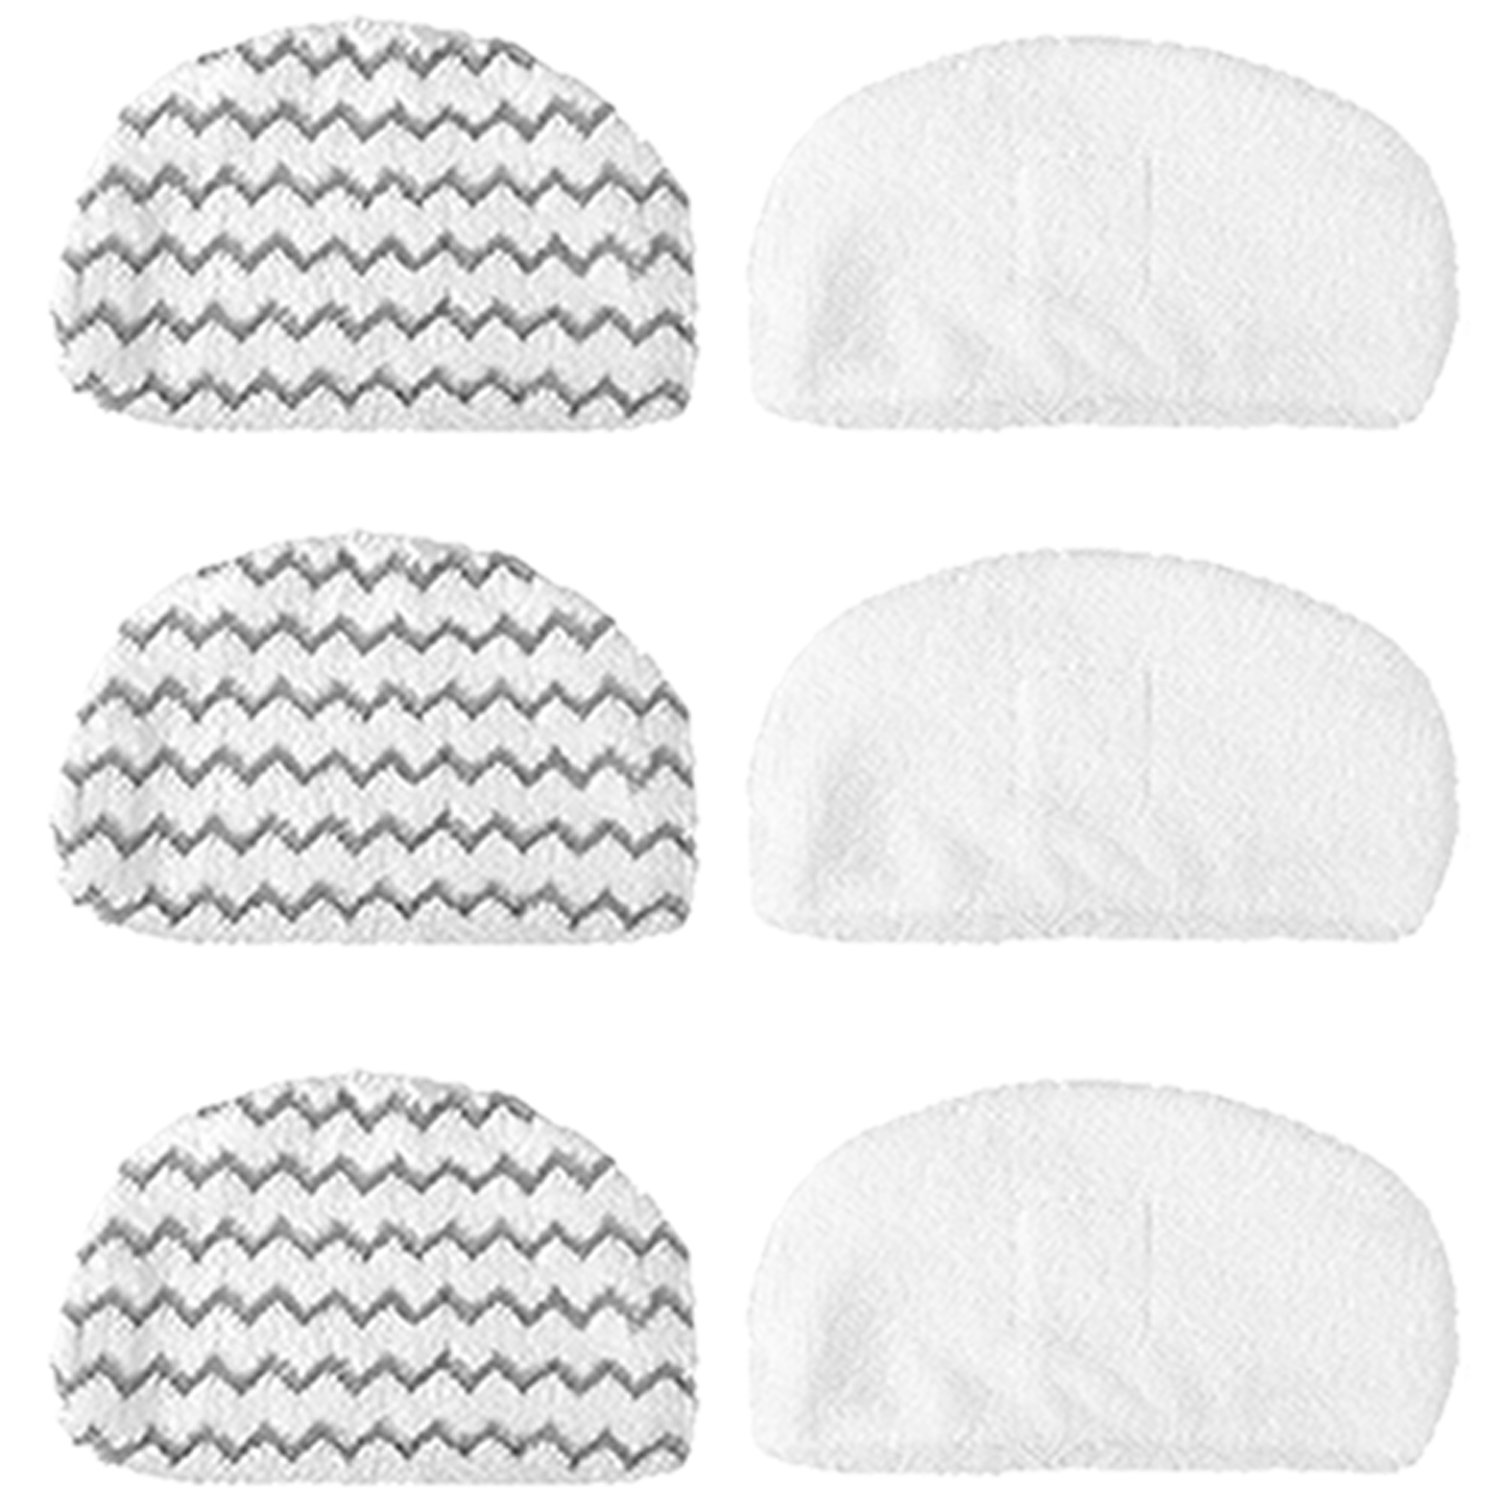 6Pcs Amyehouse Washable Mopping & Scrubbing Pads Replacement for Bissell Powerfresh 1940 1440 1544 Series Steam Mop Model 1544A, 2075A, 1440, 1940W,19404, Deluxe 1806, 1940A, 5938, 19408, 1940Q, 1940W